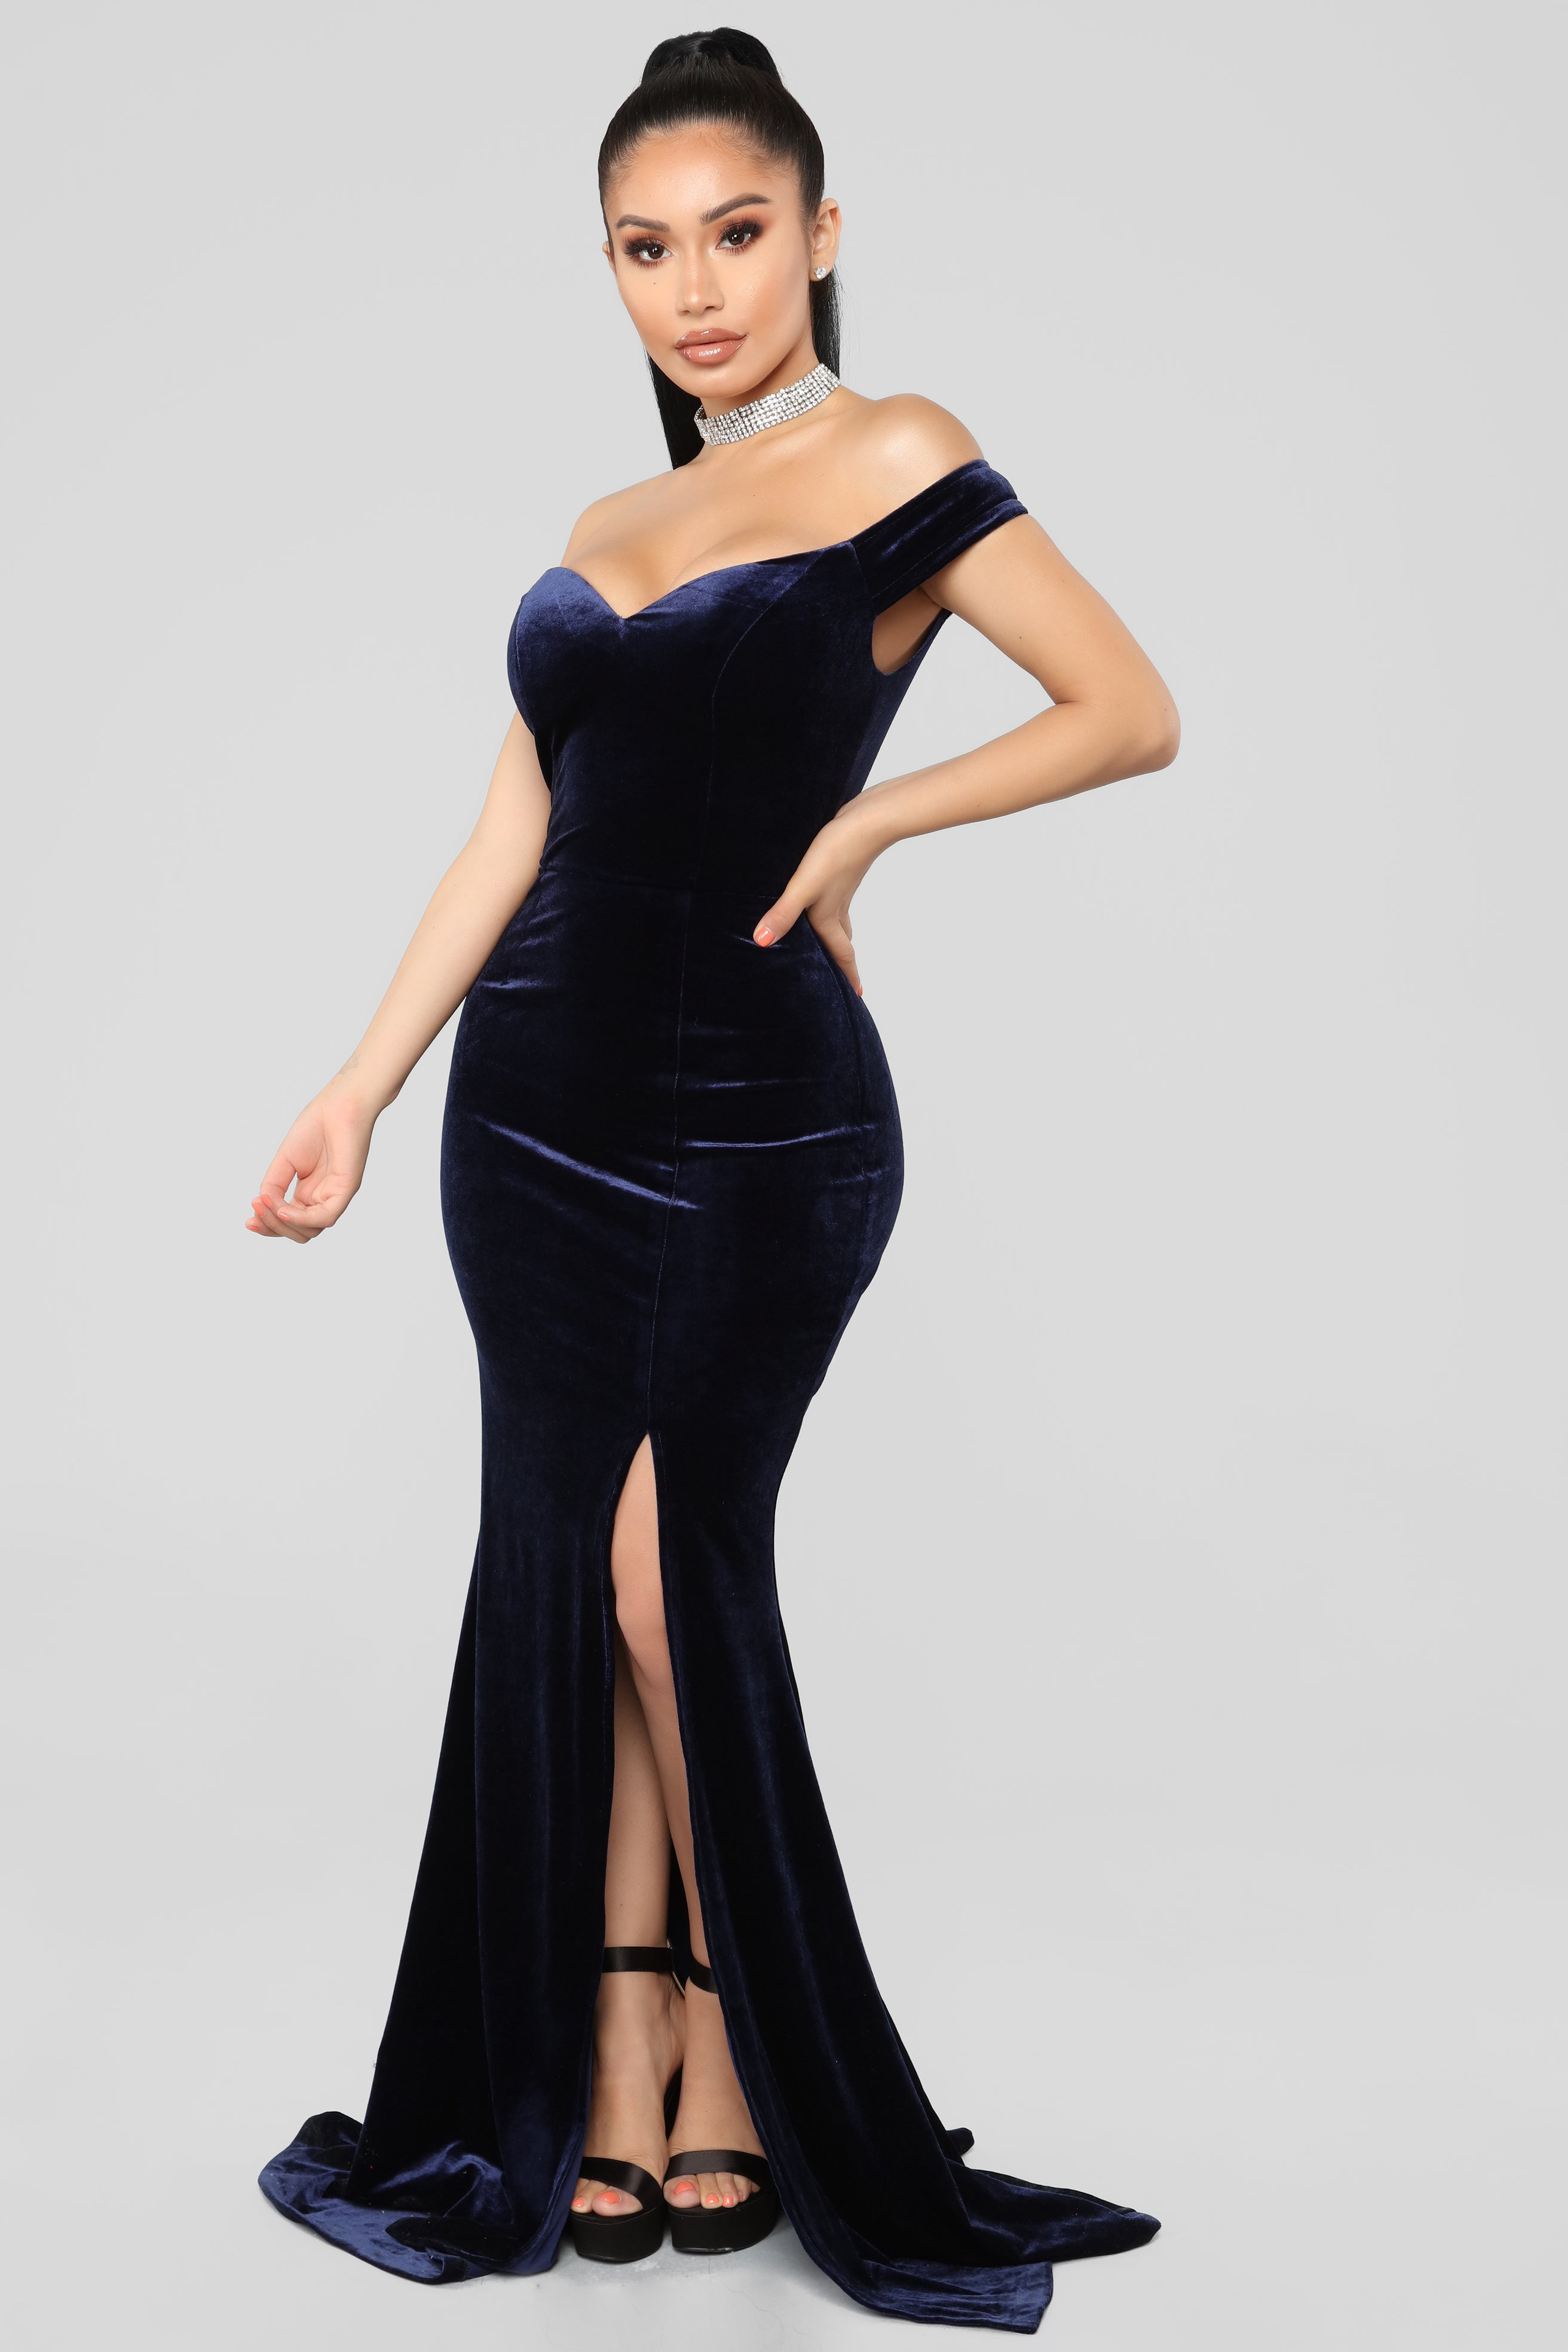 bd91fe4b73f Ready For The Party Velvet Dress - Navy